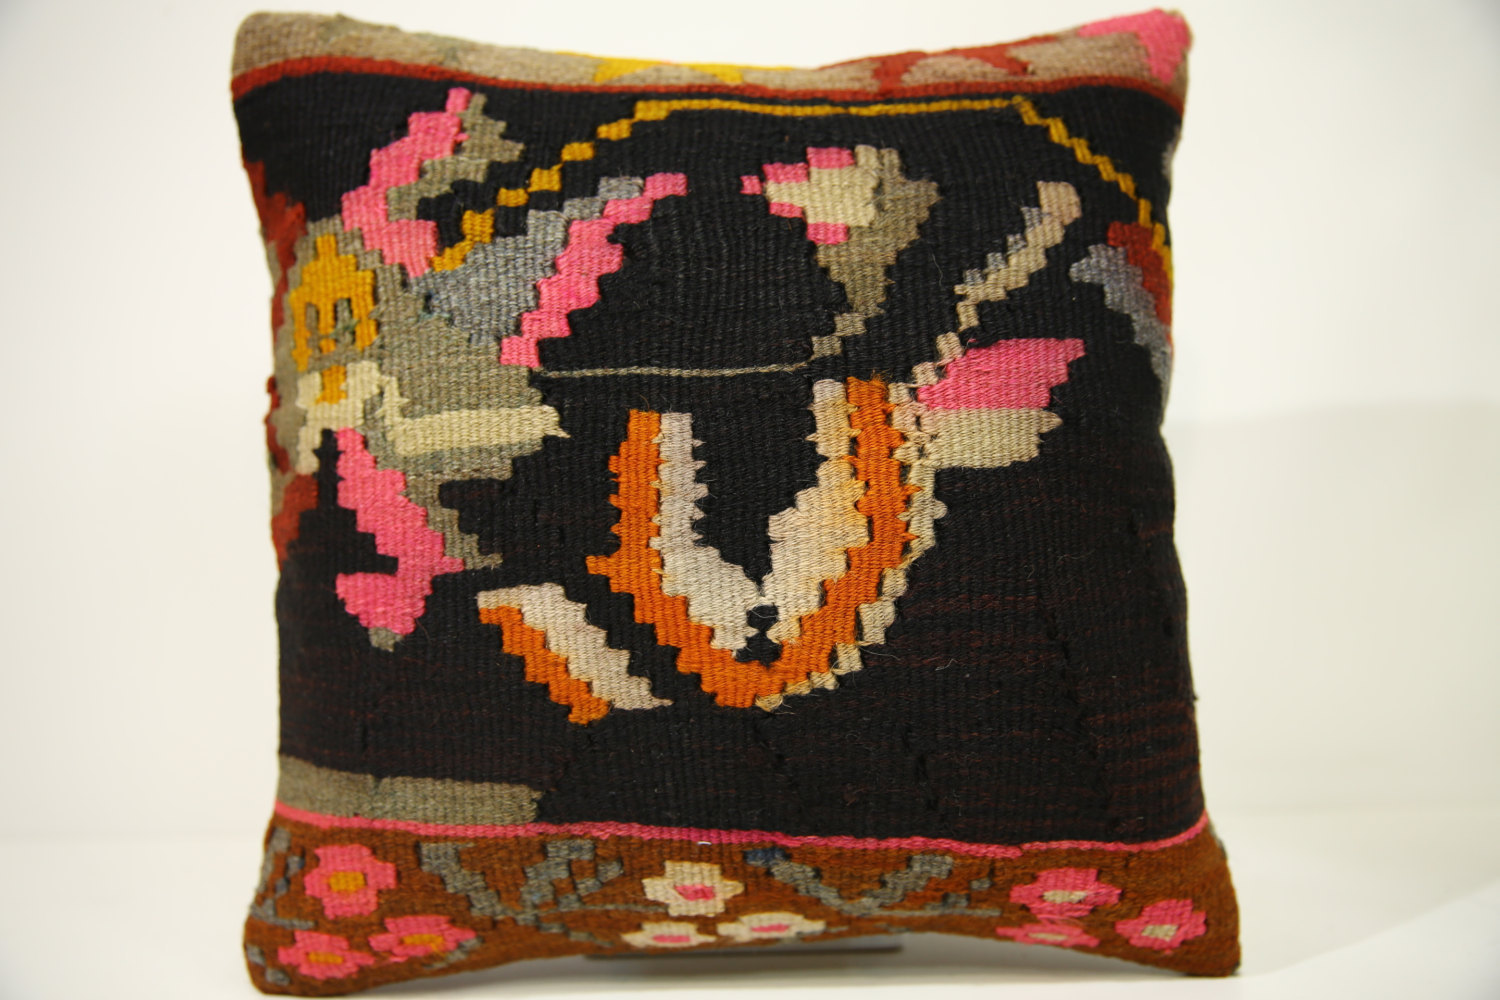 Kilim Pillows | 14x14 | Kelim pillows | 1422 | Turkish pillows , Kilim cushion